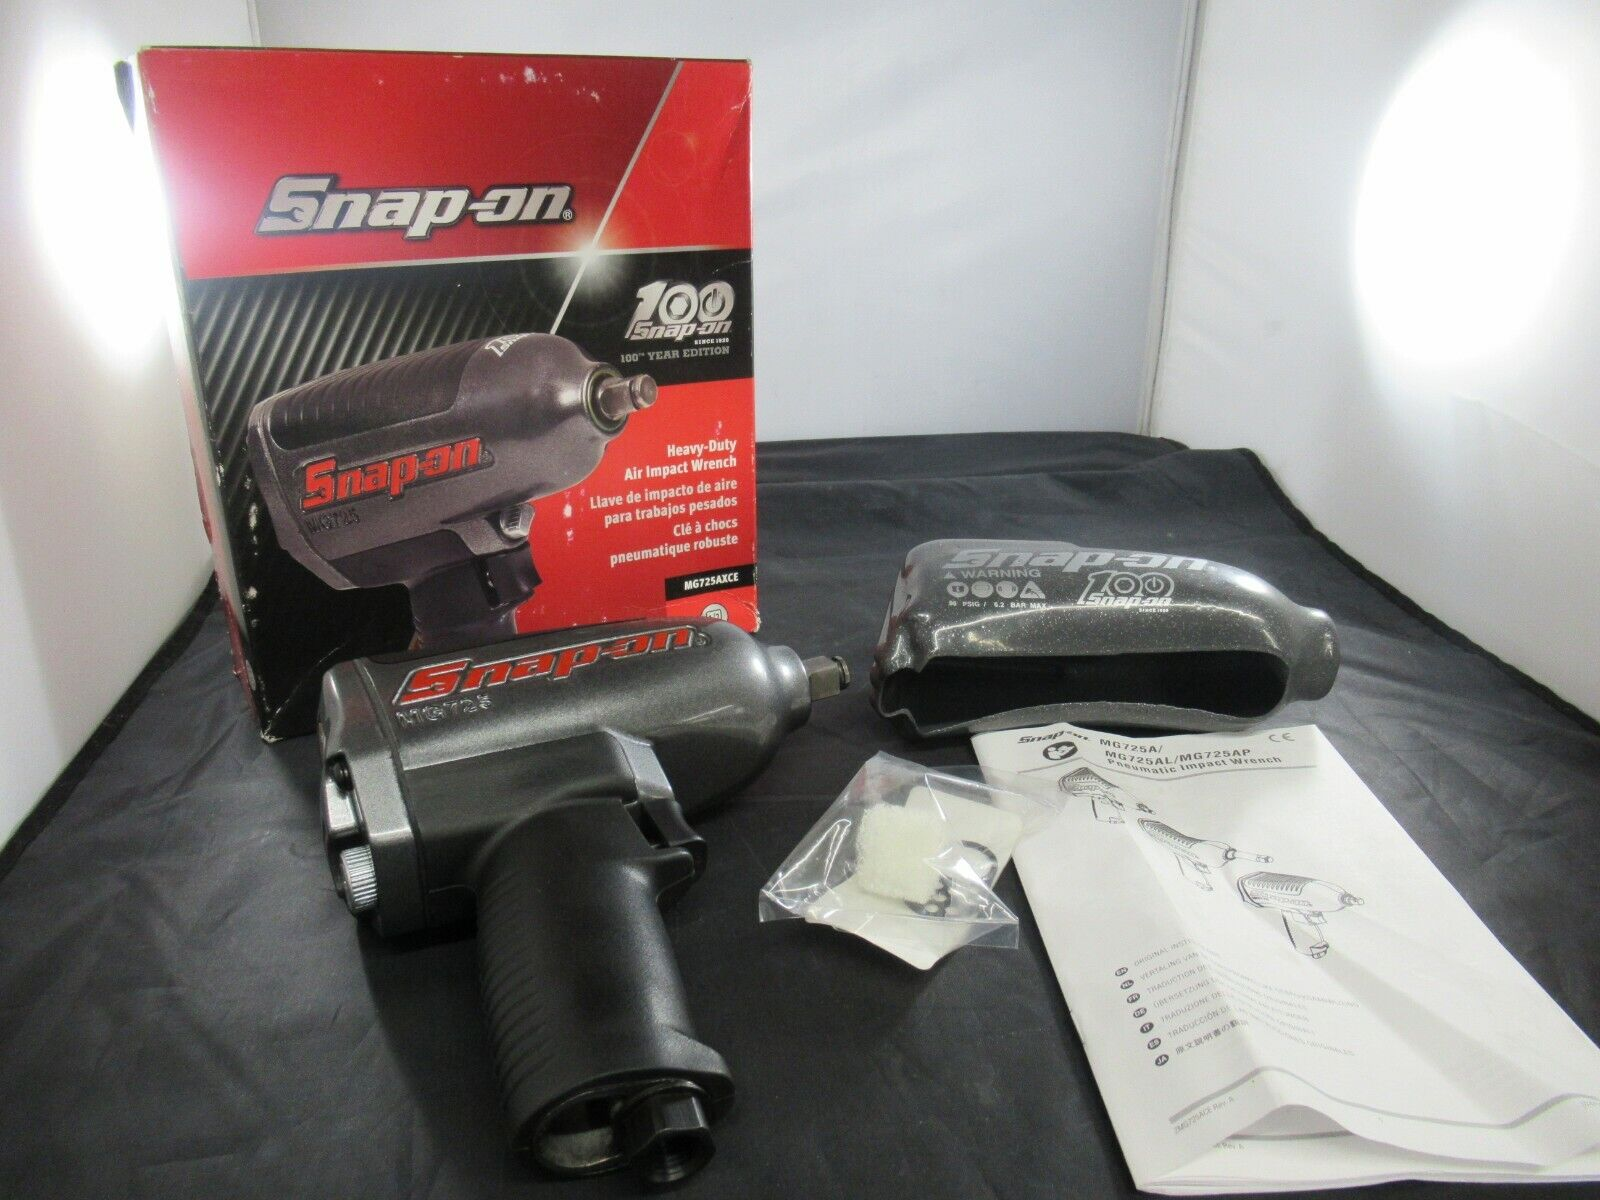 Snap On MG725AXCE 1/2